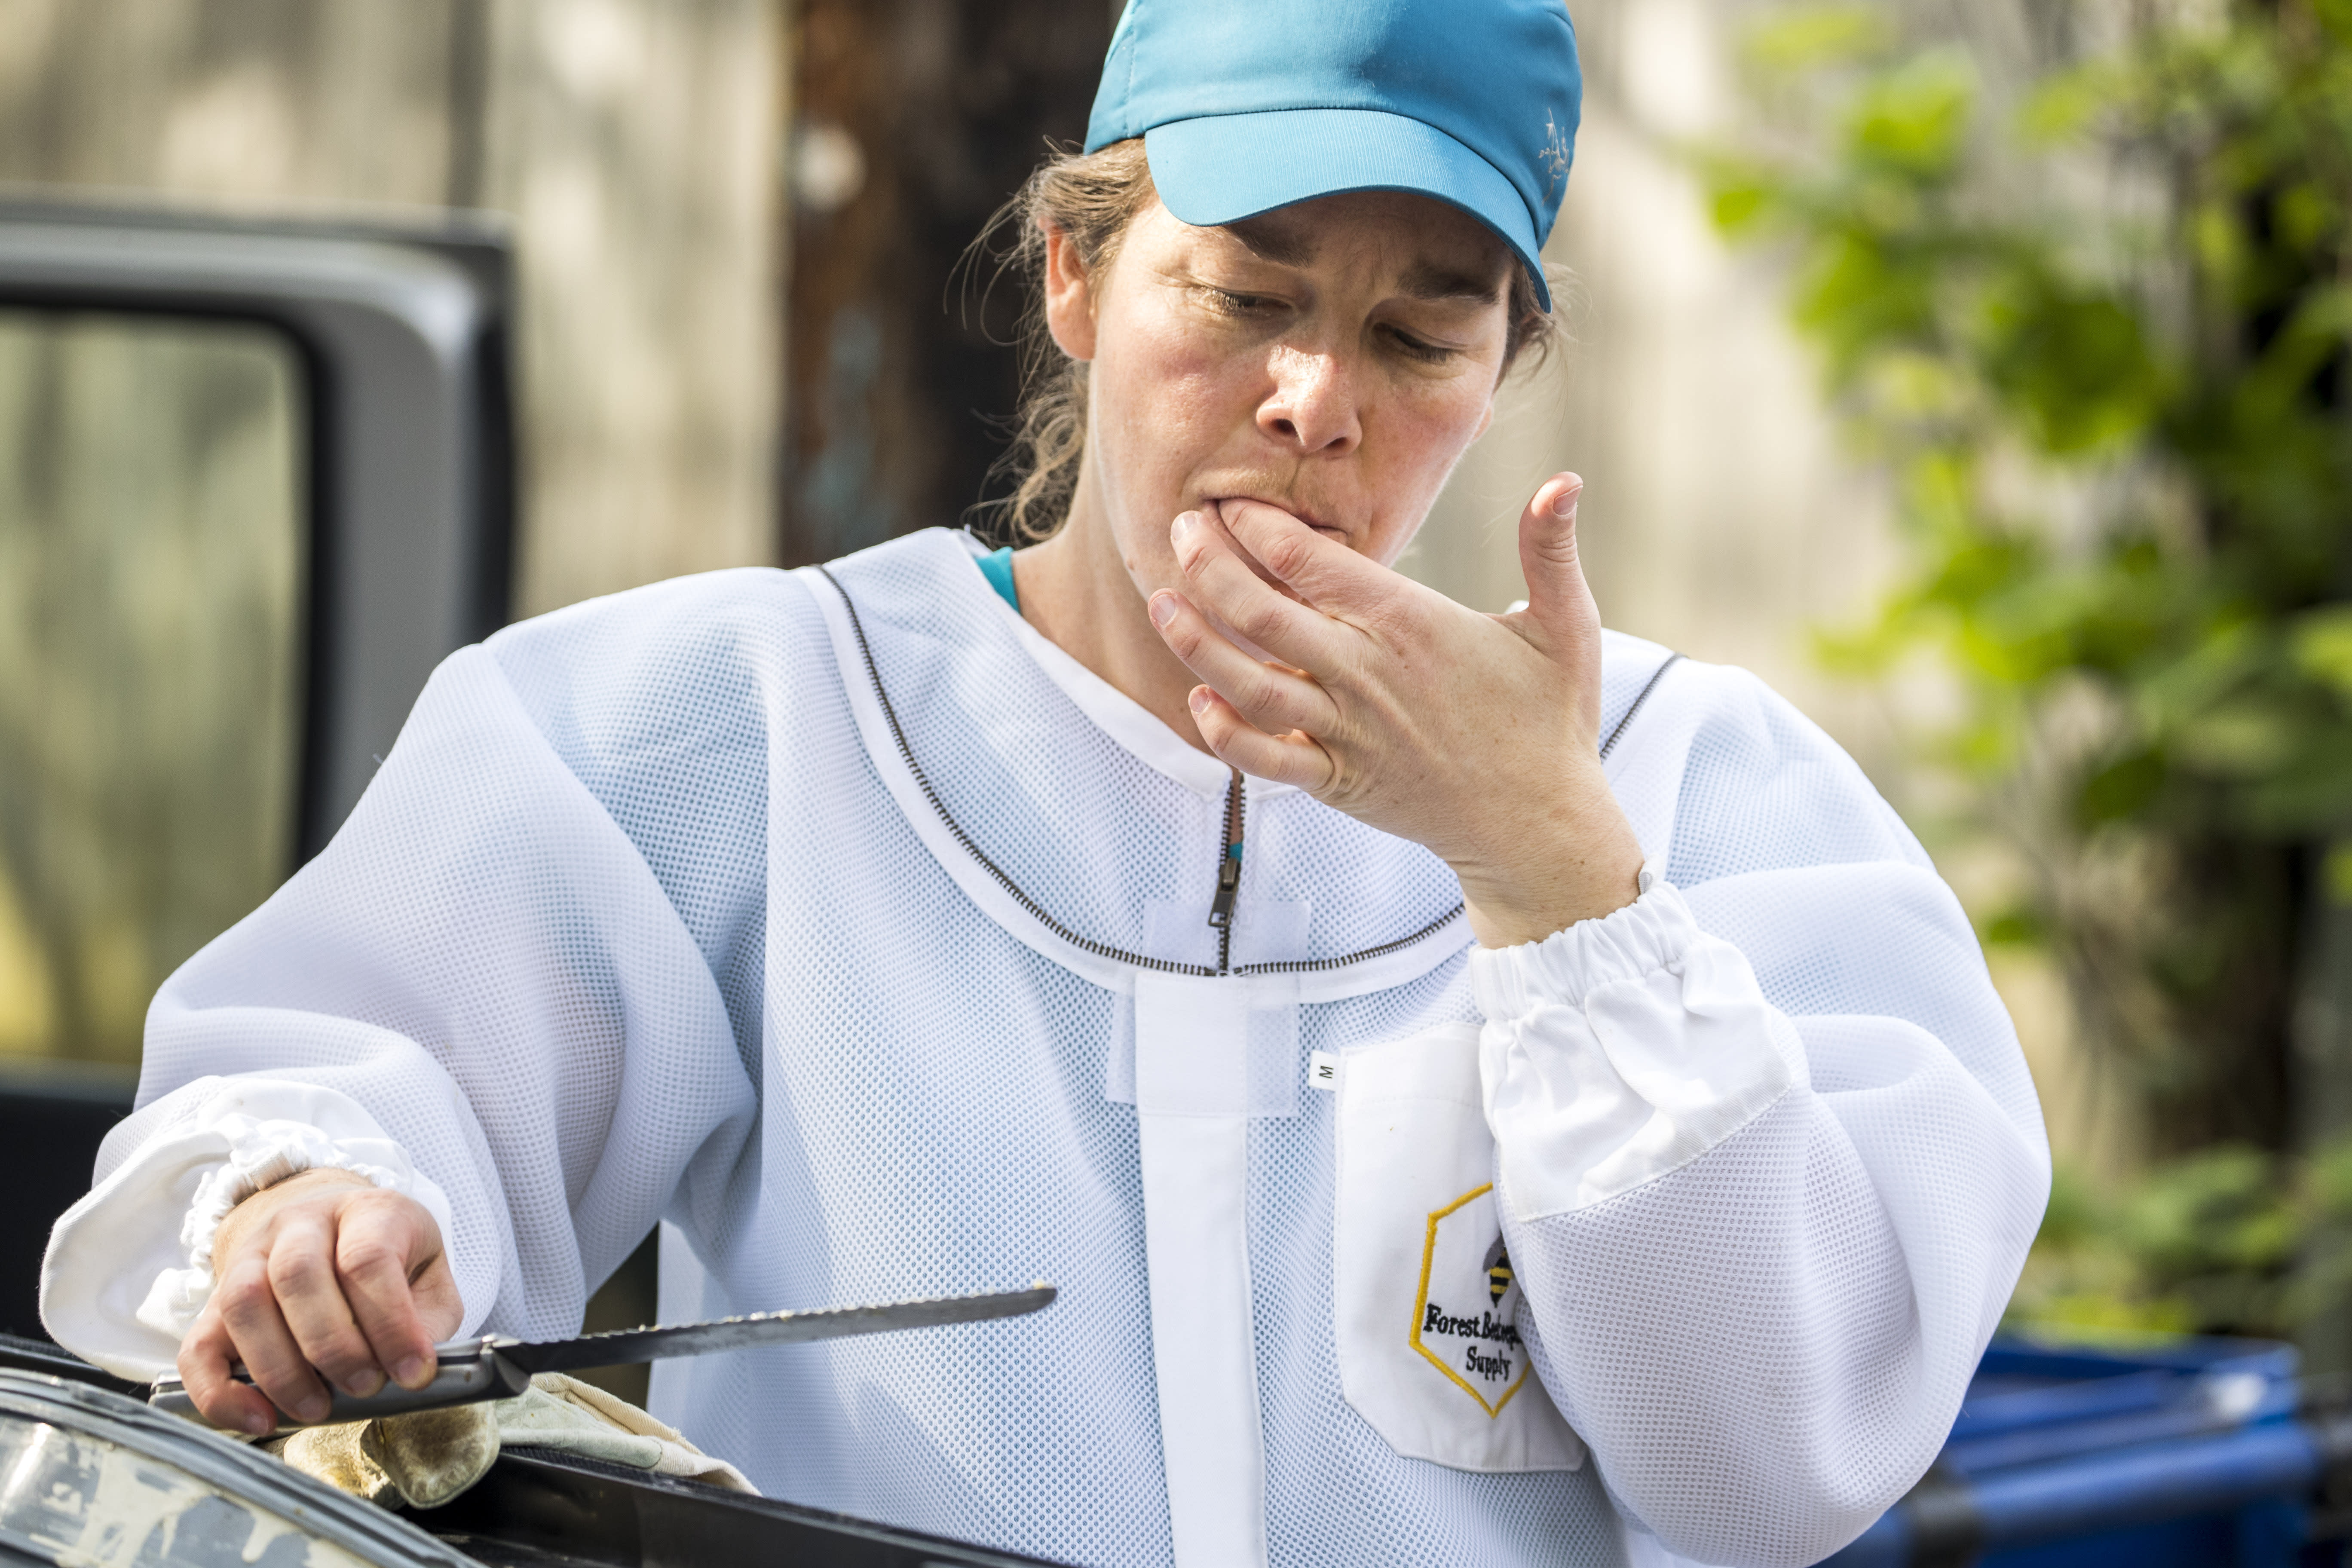 Beekeeper Erin Gleeson licks honey from a knife after helping to remove a swarm of honeybees from a fence line in a neighborhood in Anacostia, Monday, April 20, 2020, in Washington. (AP Photo/Andrew Harnik)